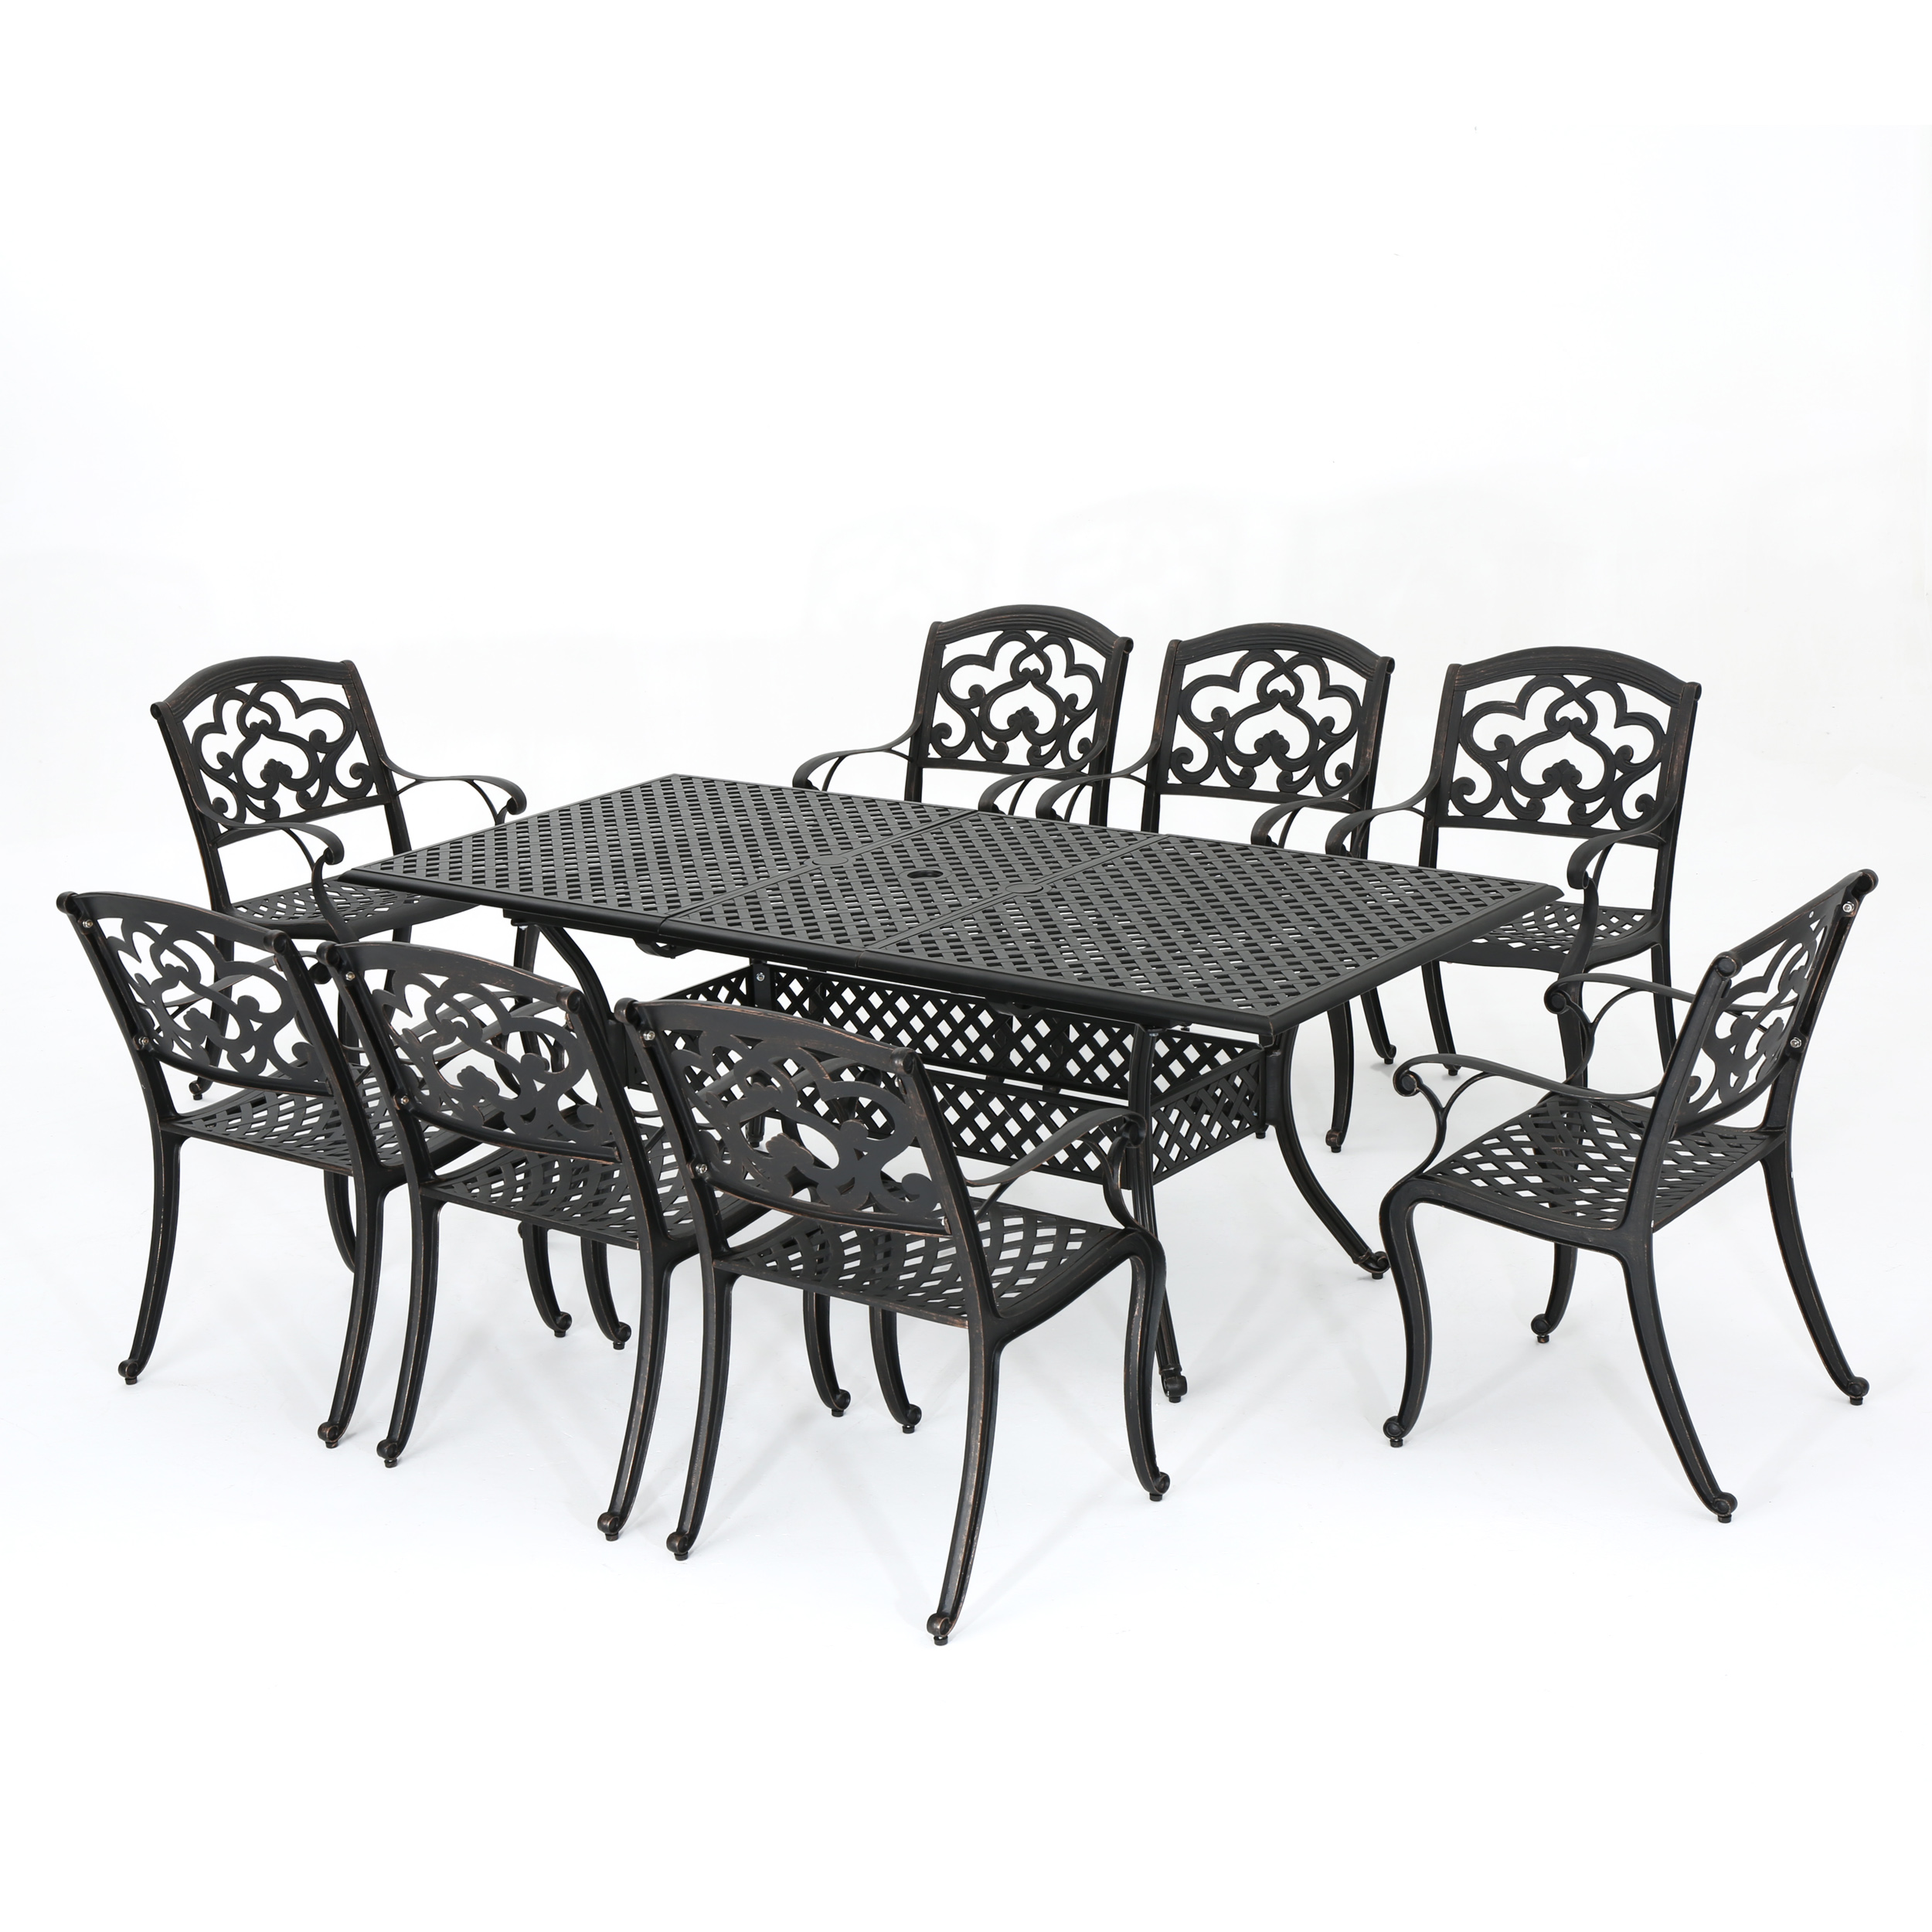 Ariel Outdoor 9 Piece Cast Aluminum Dining Set, Shiny Copper Finish